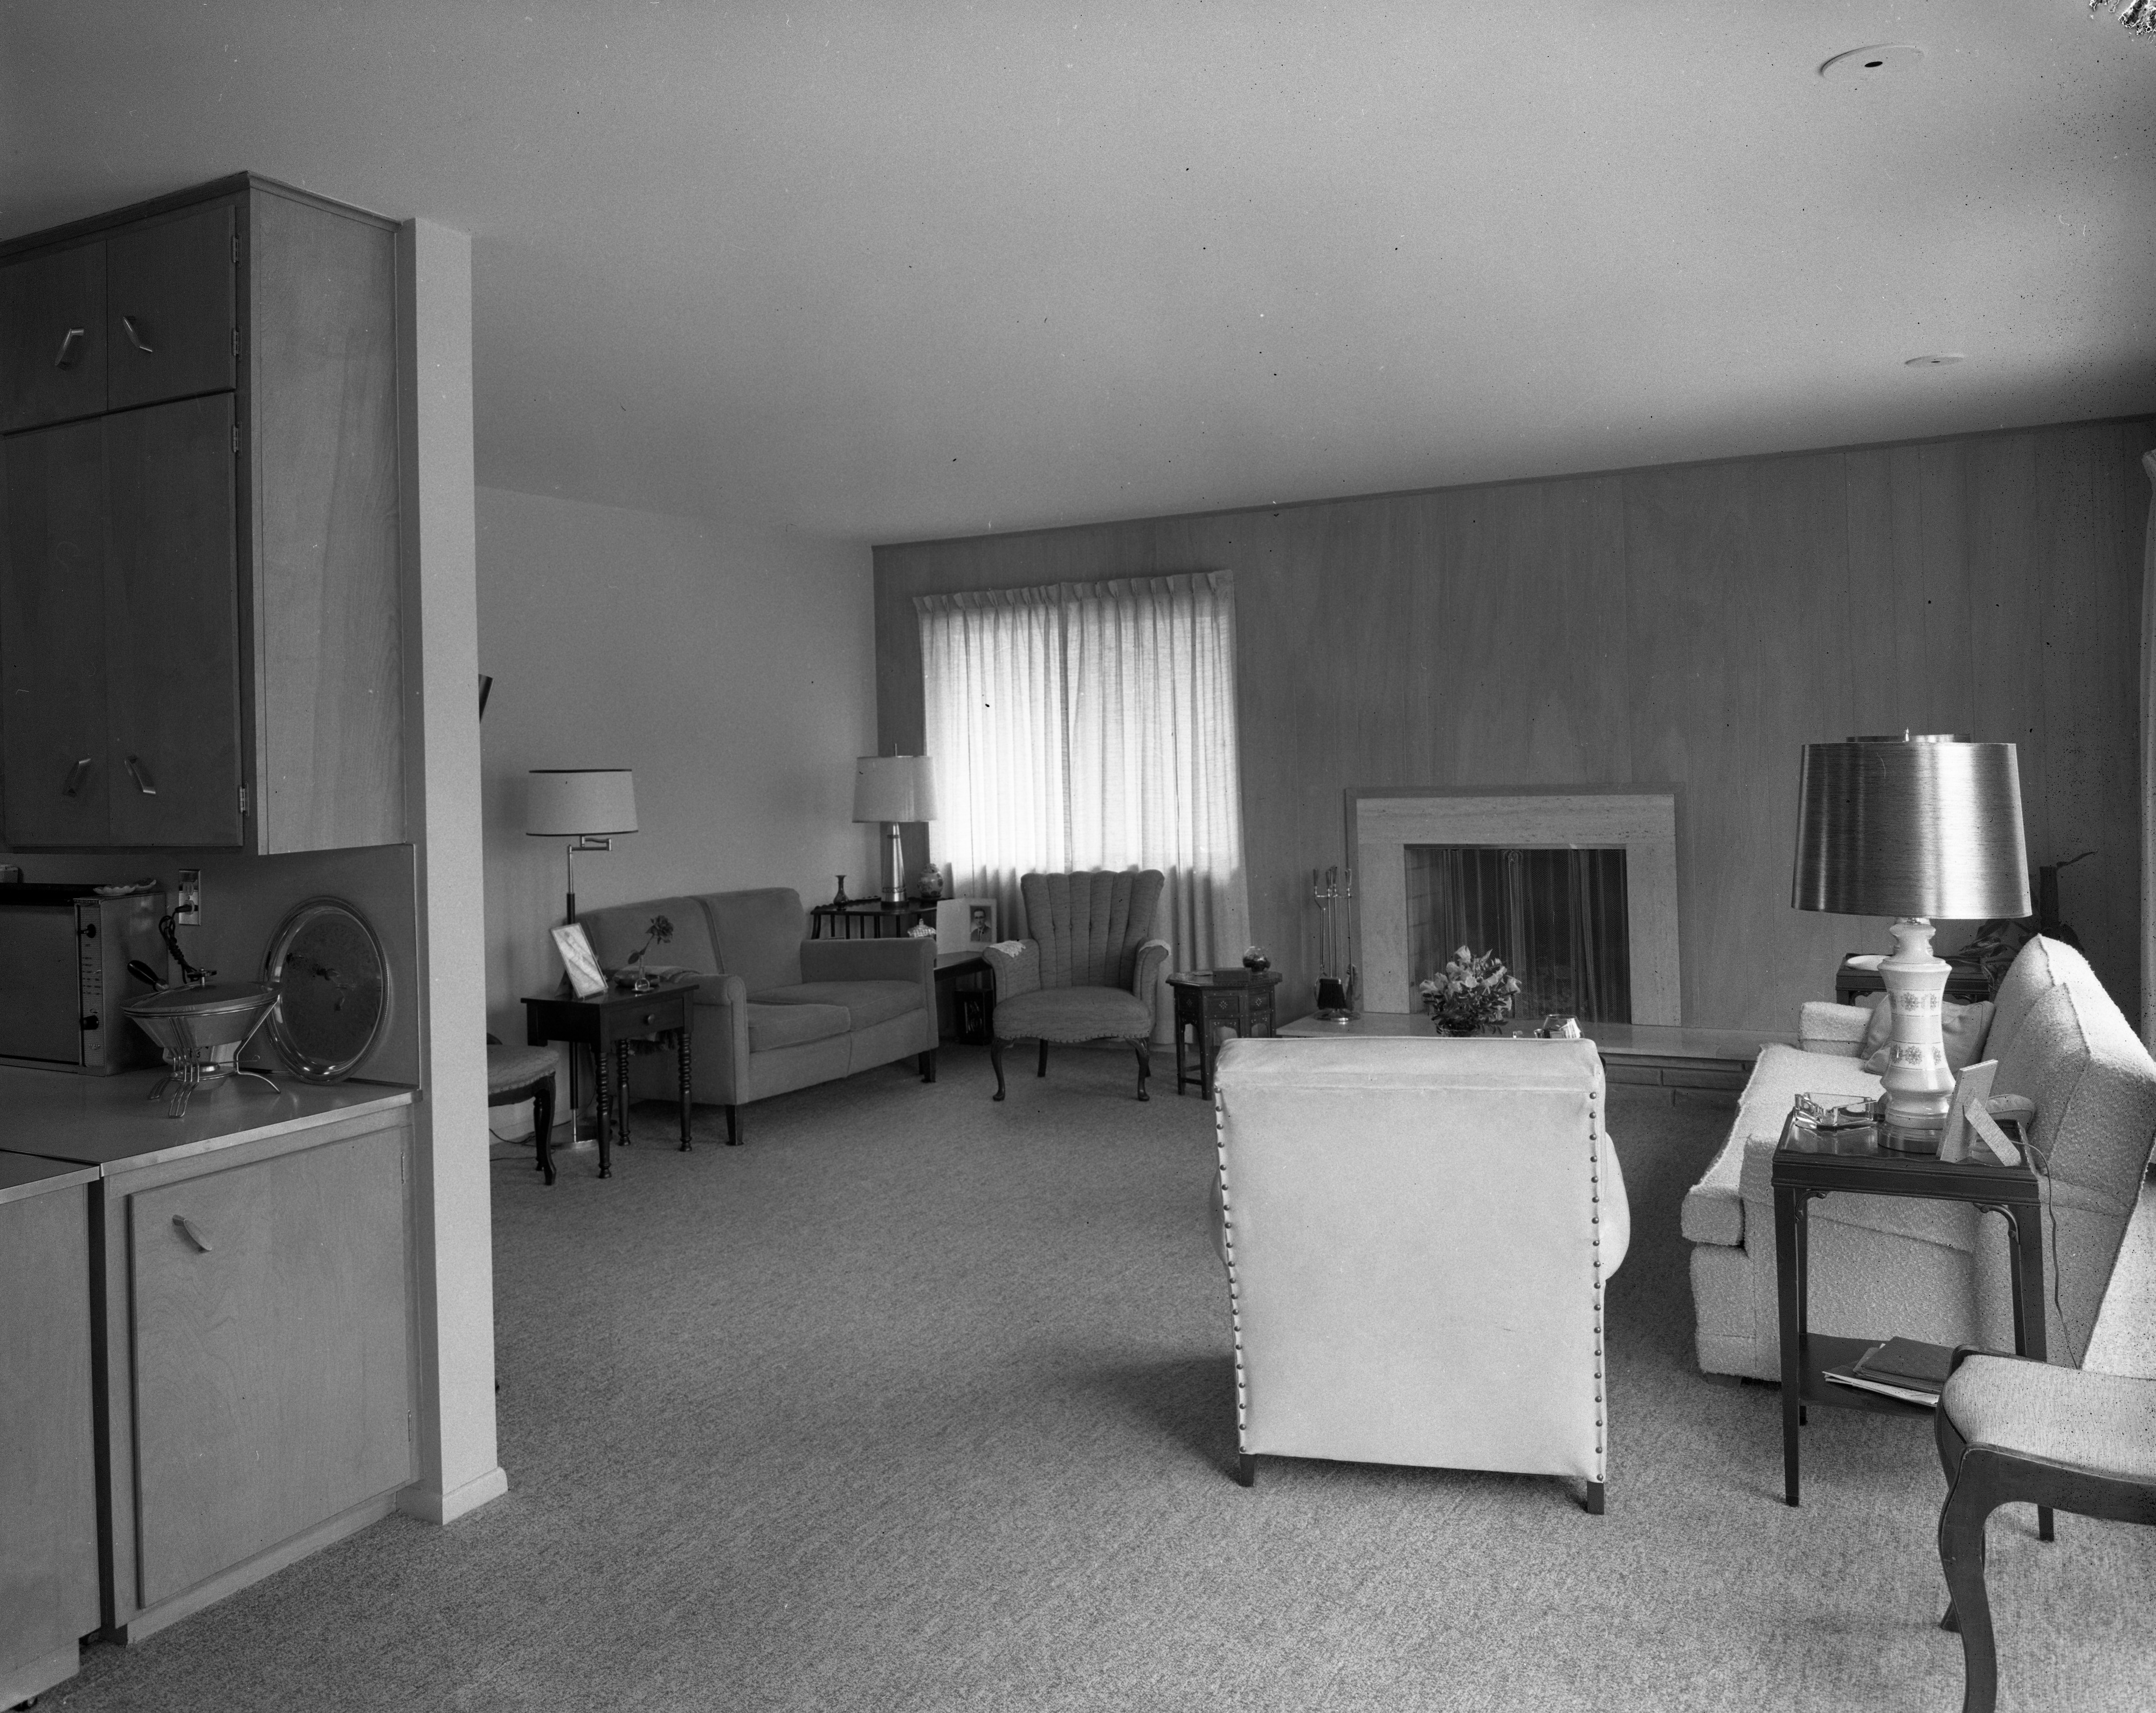 Living Room of Cecil and Dama Creal Home On Cedar Bend Drive, April 1958 image